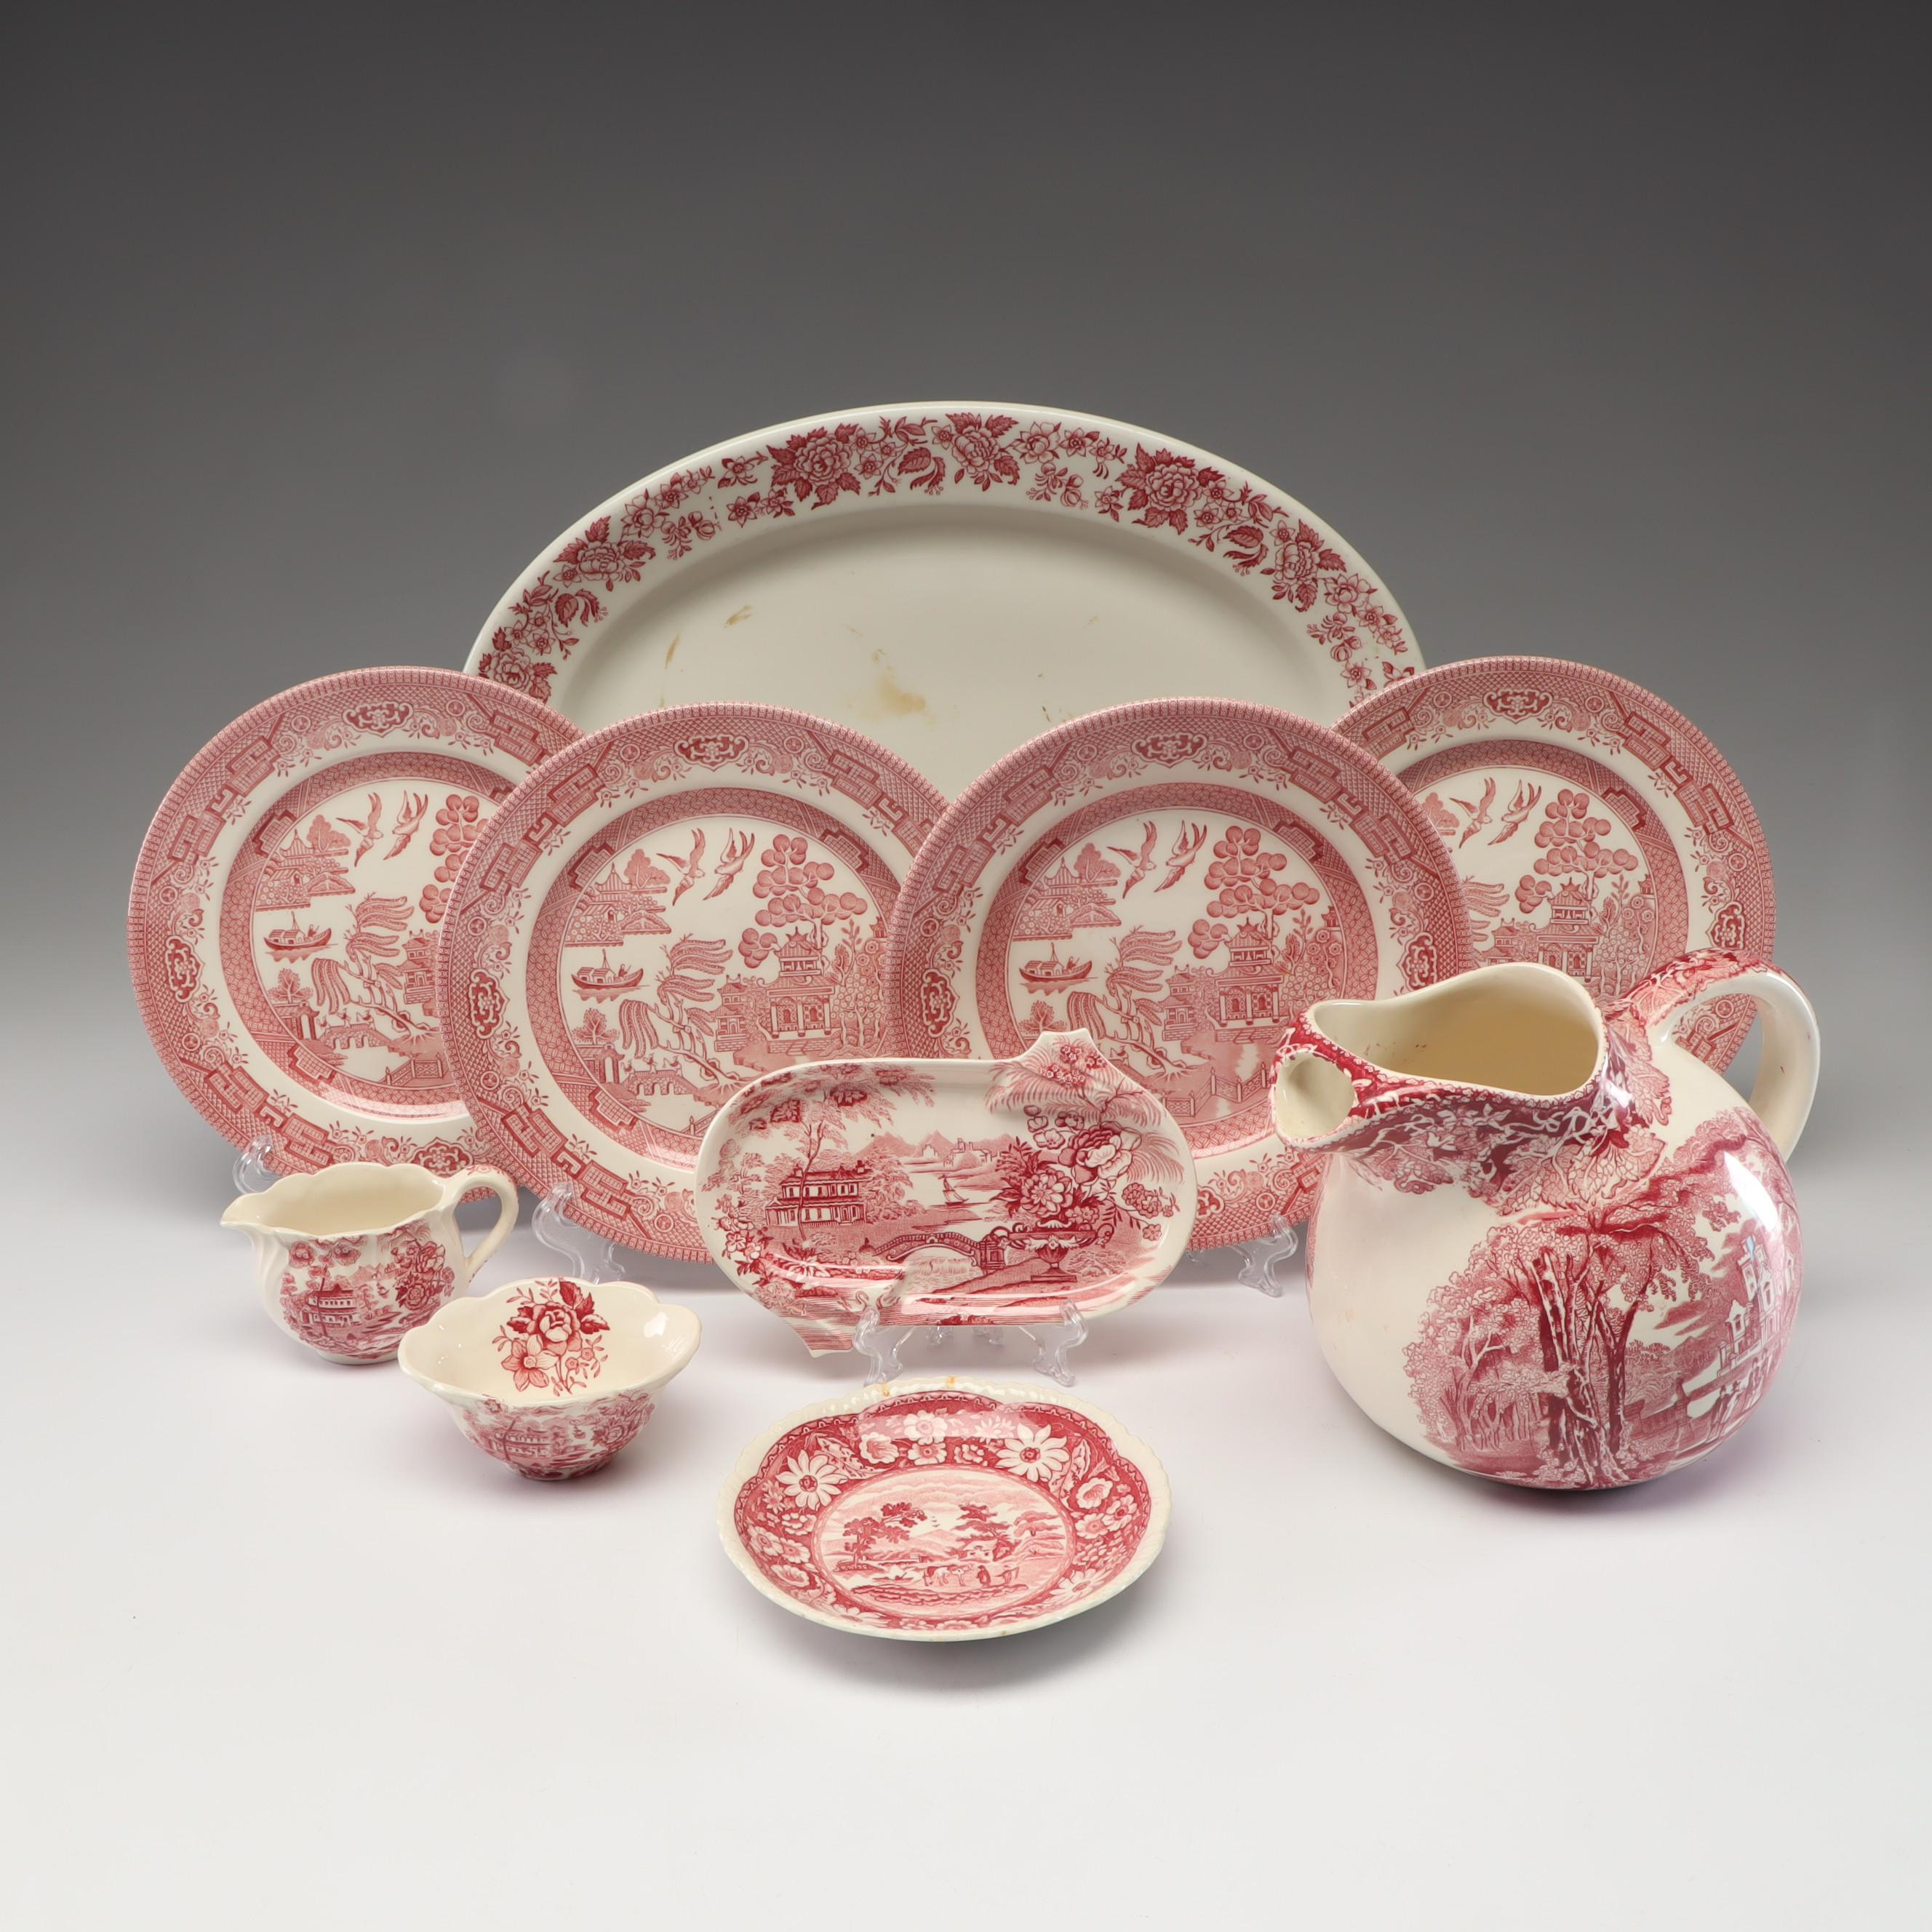 Royal Staffordshire by Clarice Cliff, Mason's and Other Pink Transfer Tableware